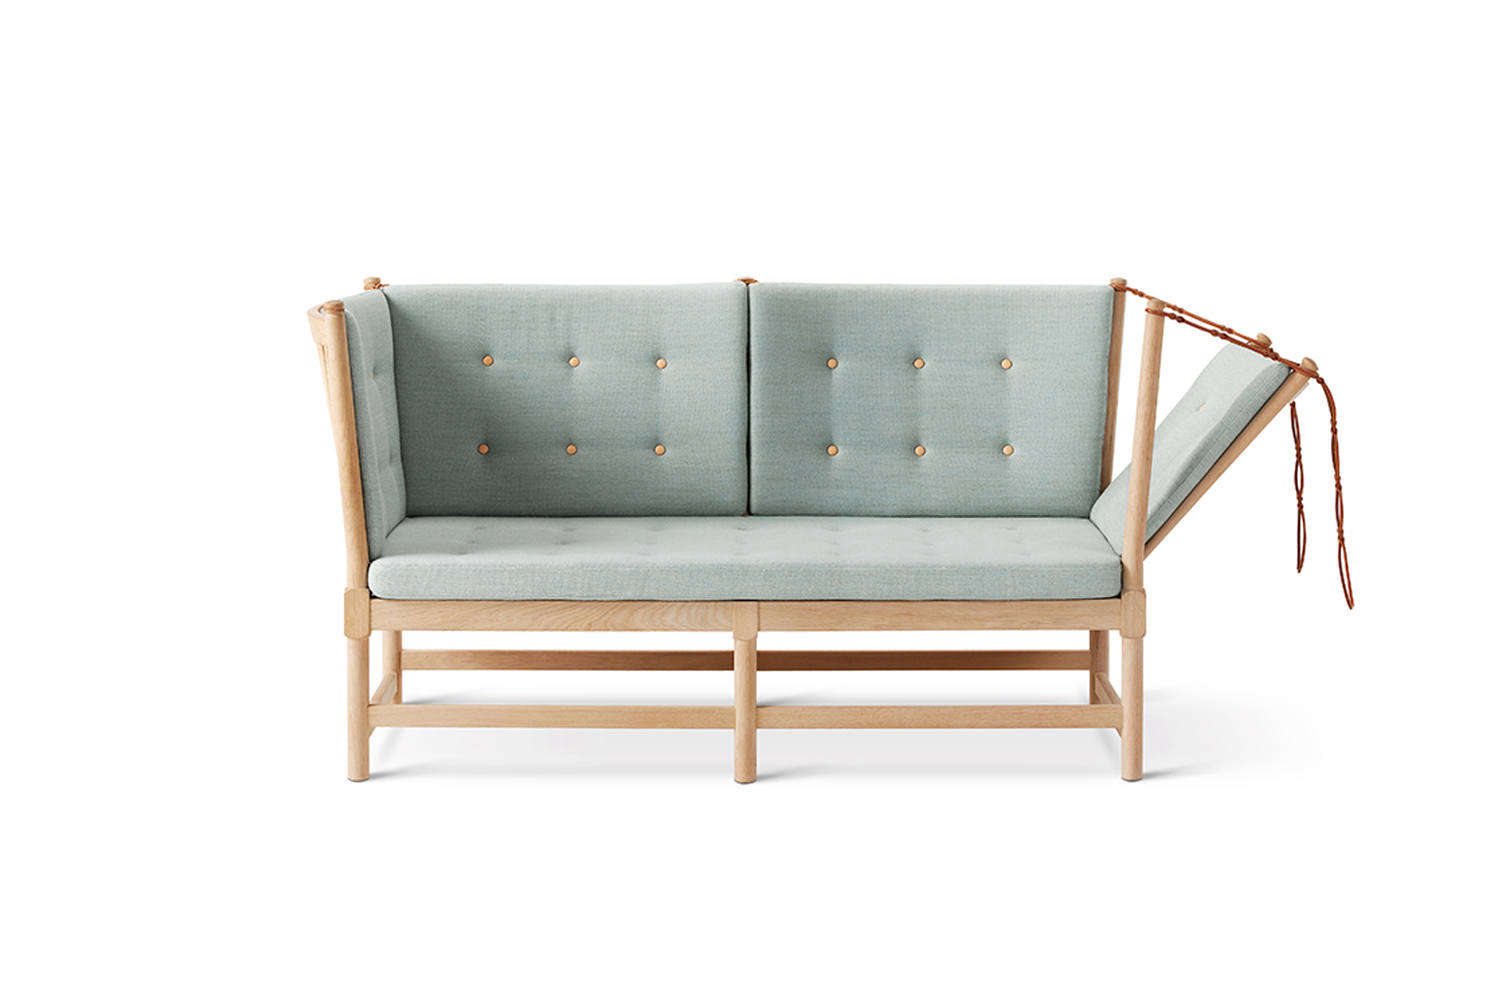 Børge Mogensen designed the Spoke Back Sofa in 45 as an English daybed and French chaise combo, thanks to the hinged side. It&#8